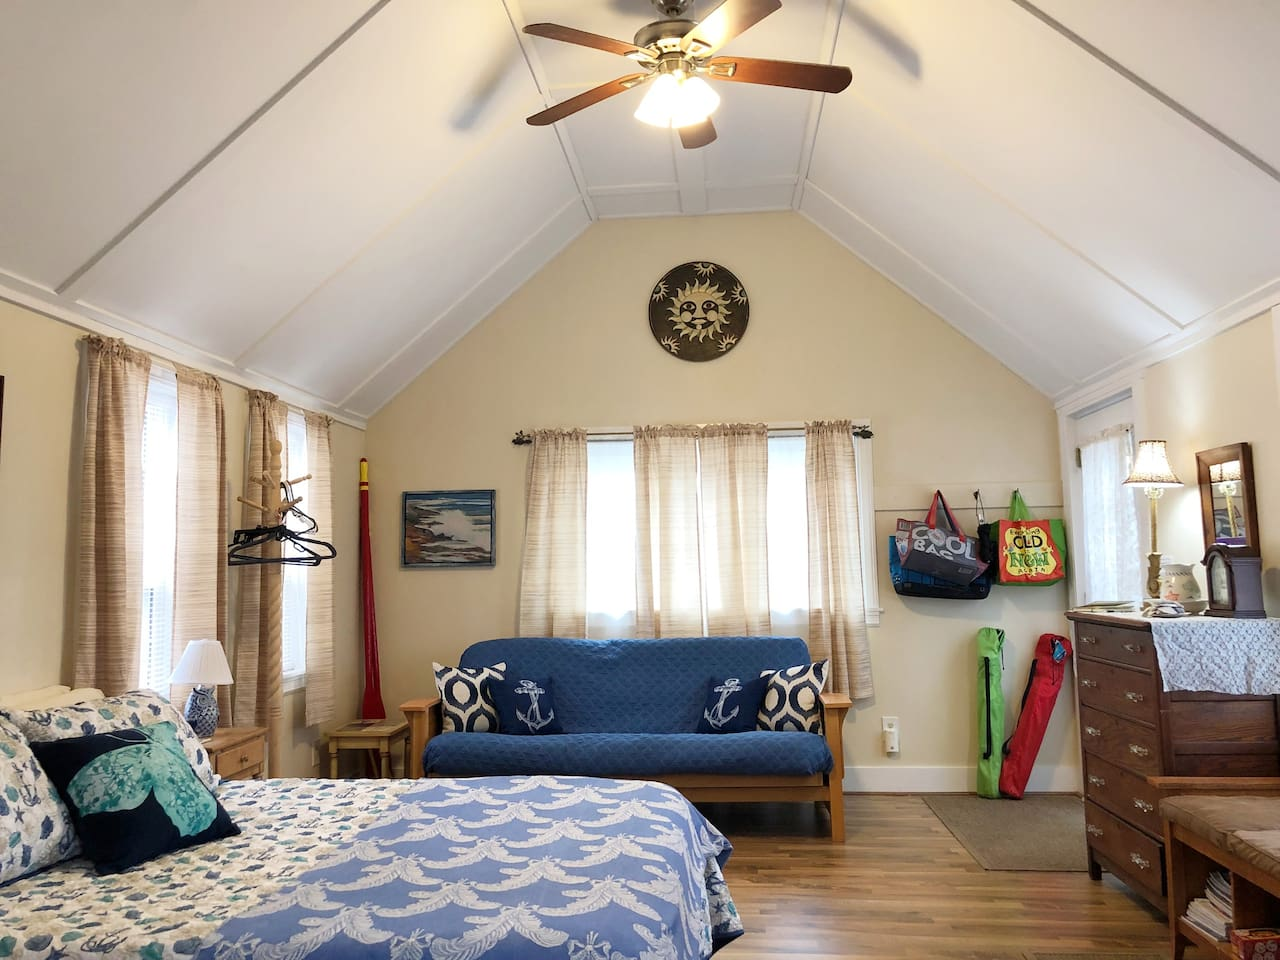 Bright and inviting space to relax and unwind!  Queen bed and double futon couch